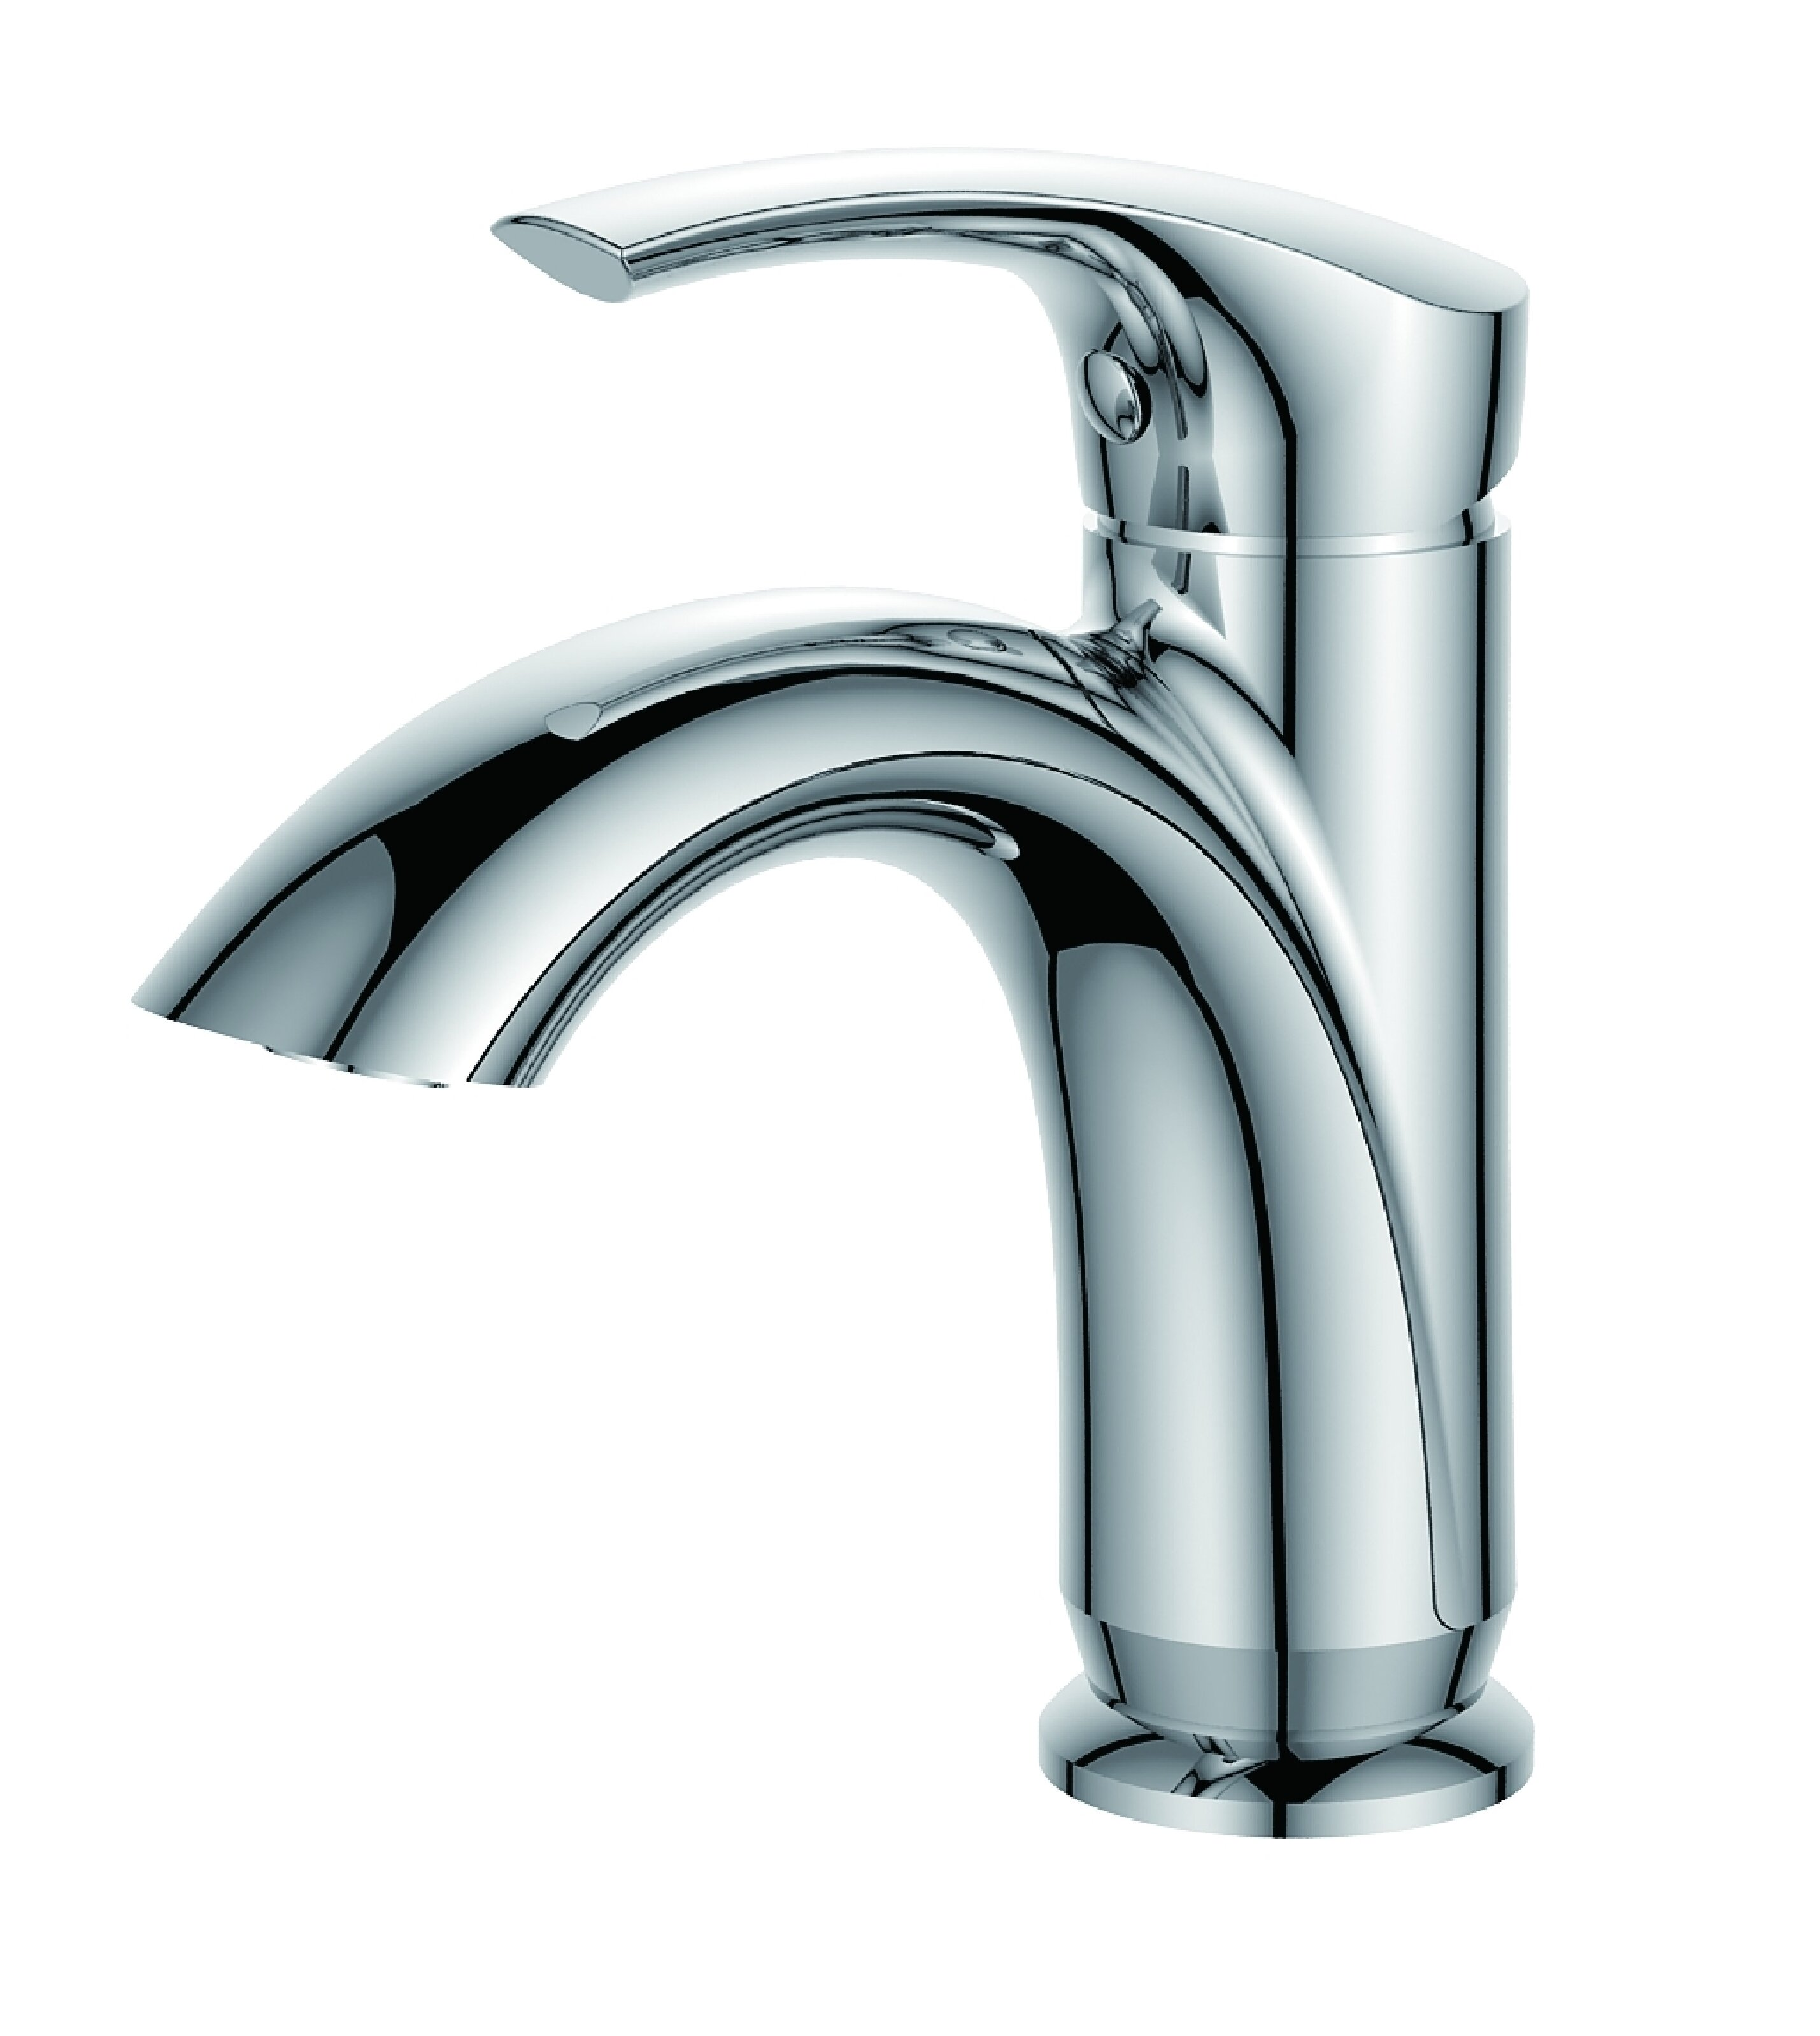 Magnificent T & S Faucets Gallery - Faucet Collections - thoughtfire ...